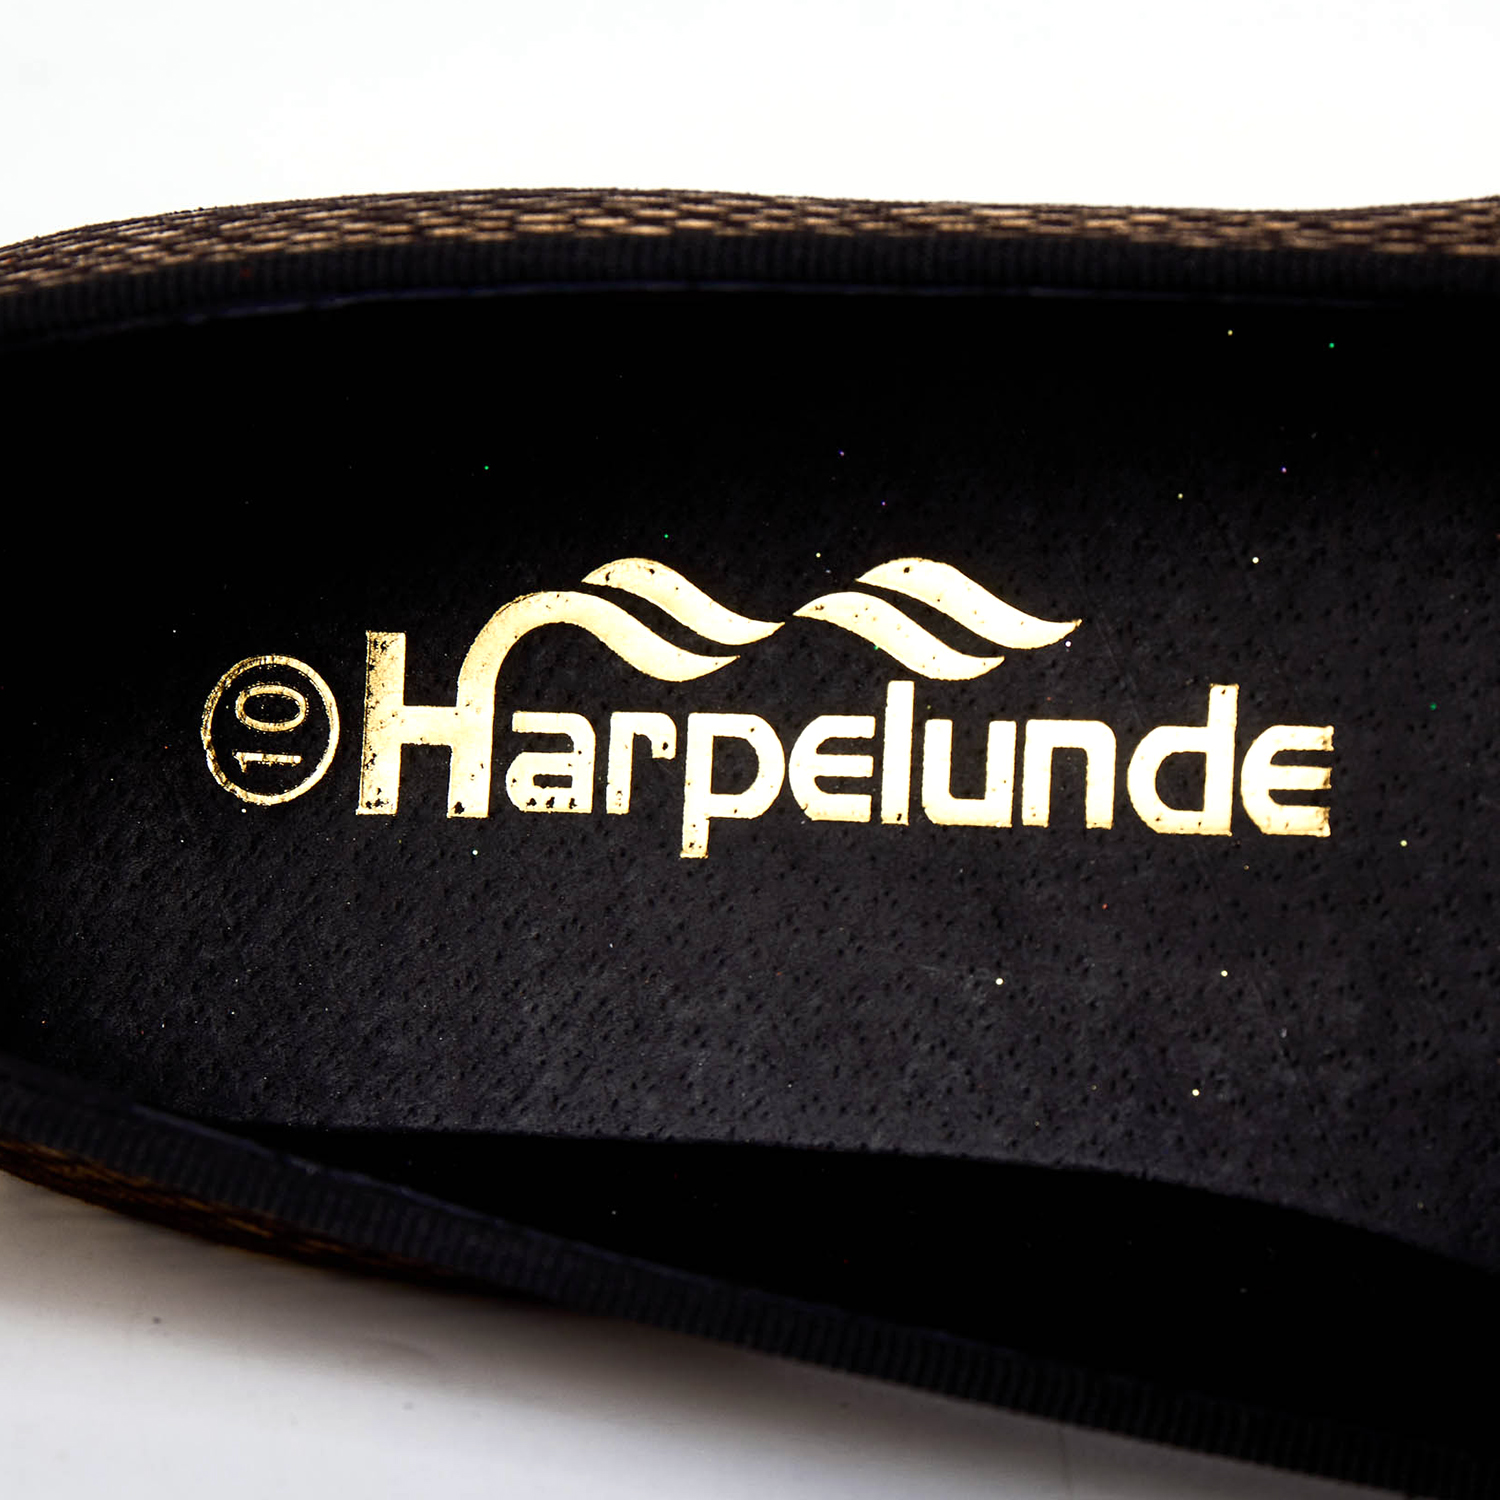 Paisley Designer Harpelunde Hommes Peau Mariage Taille De Formelle Mocassins Chaussures 7 Or Mode Serpent 14 HD2YE9IbeW